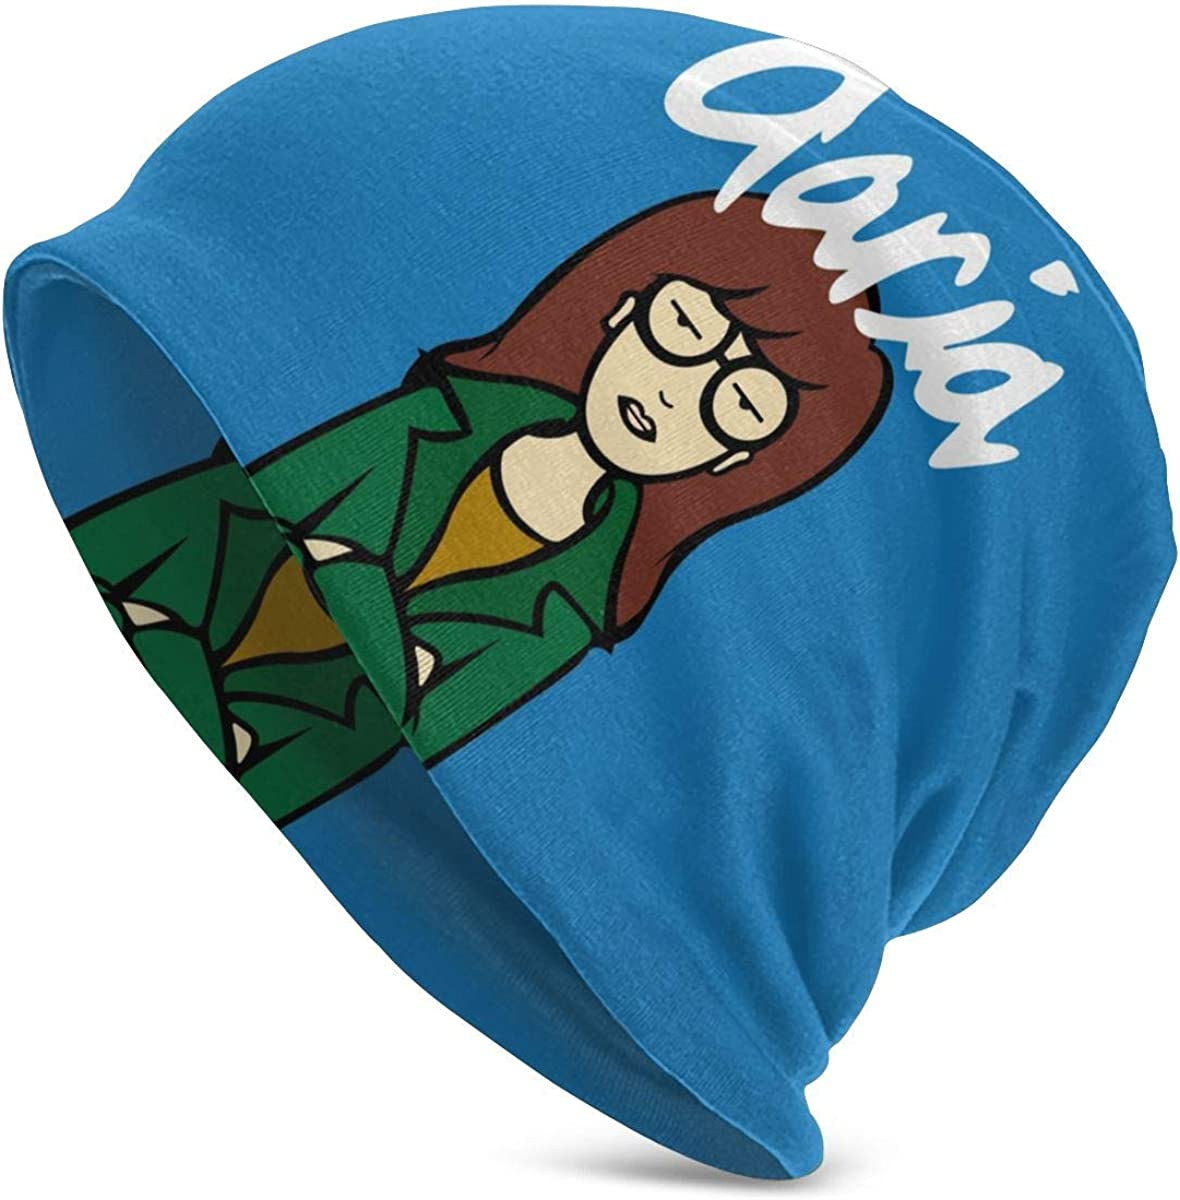 Amazon Com Ziantg Daria Cartoon Knit Beanies For Mens Womens Winter Hats Warm Hedging Caps Black Clothing